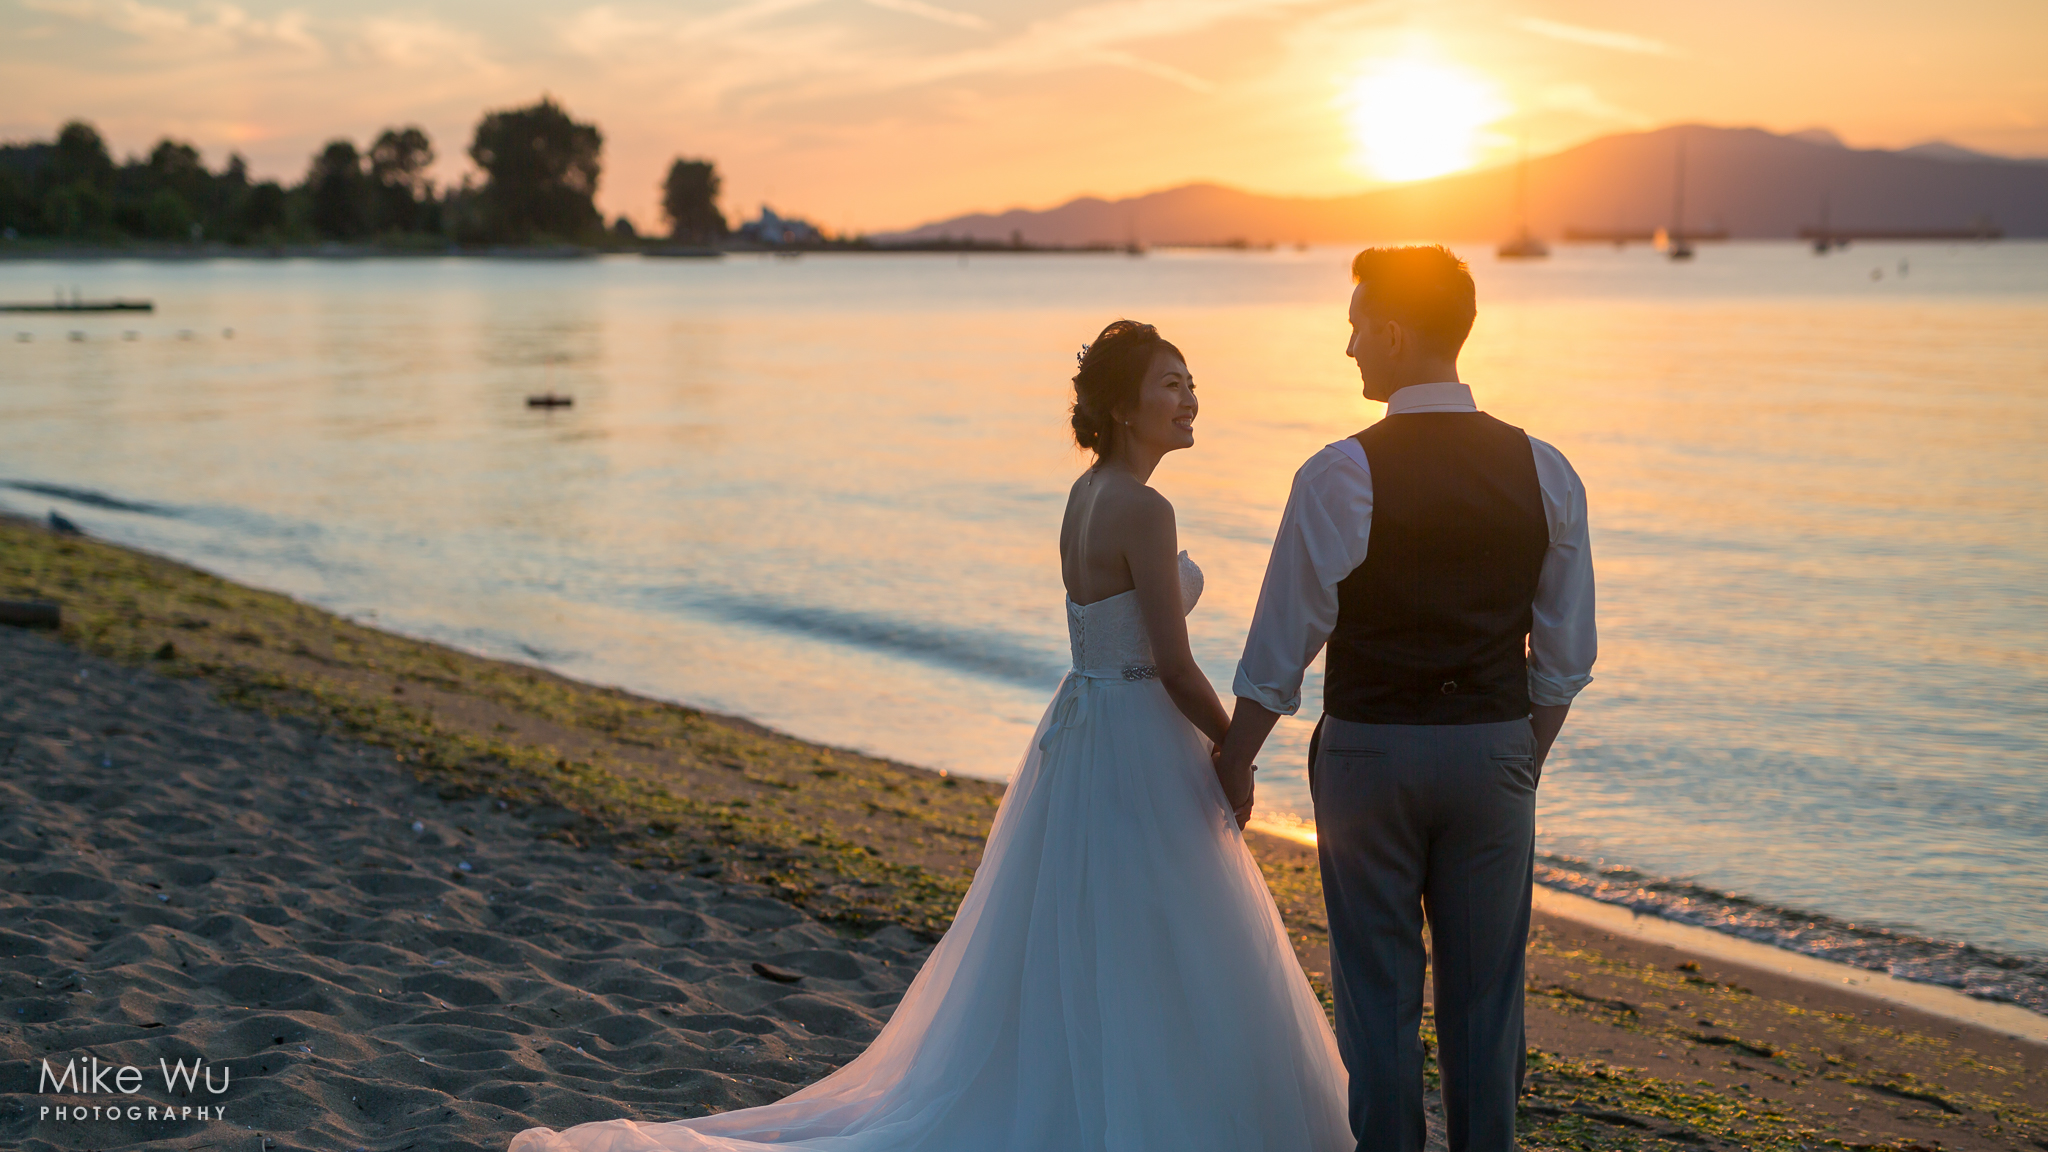 Vancouver, Wedding, sunset, Brock House, beach, sand, water, sun, golden hour, waves, love, smile, bride, groom, warm, summer